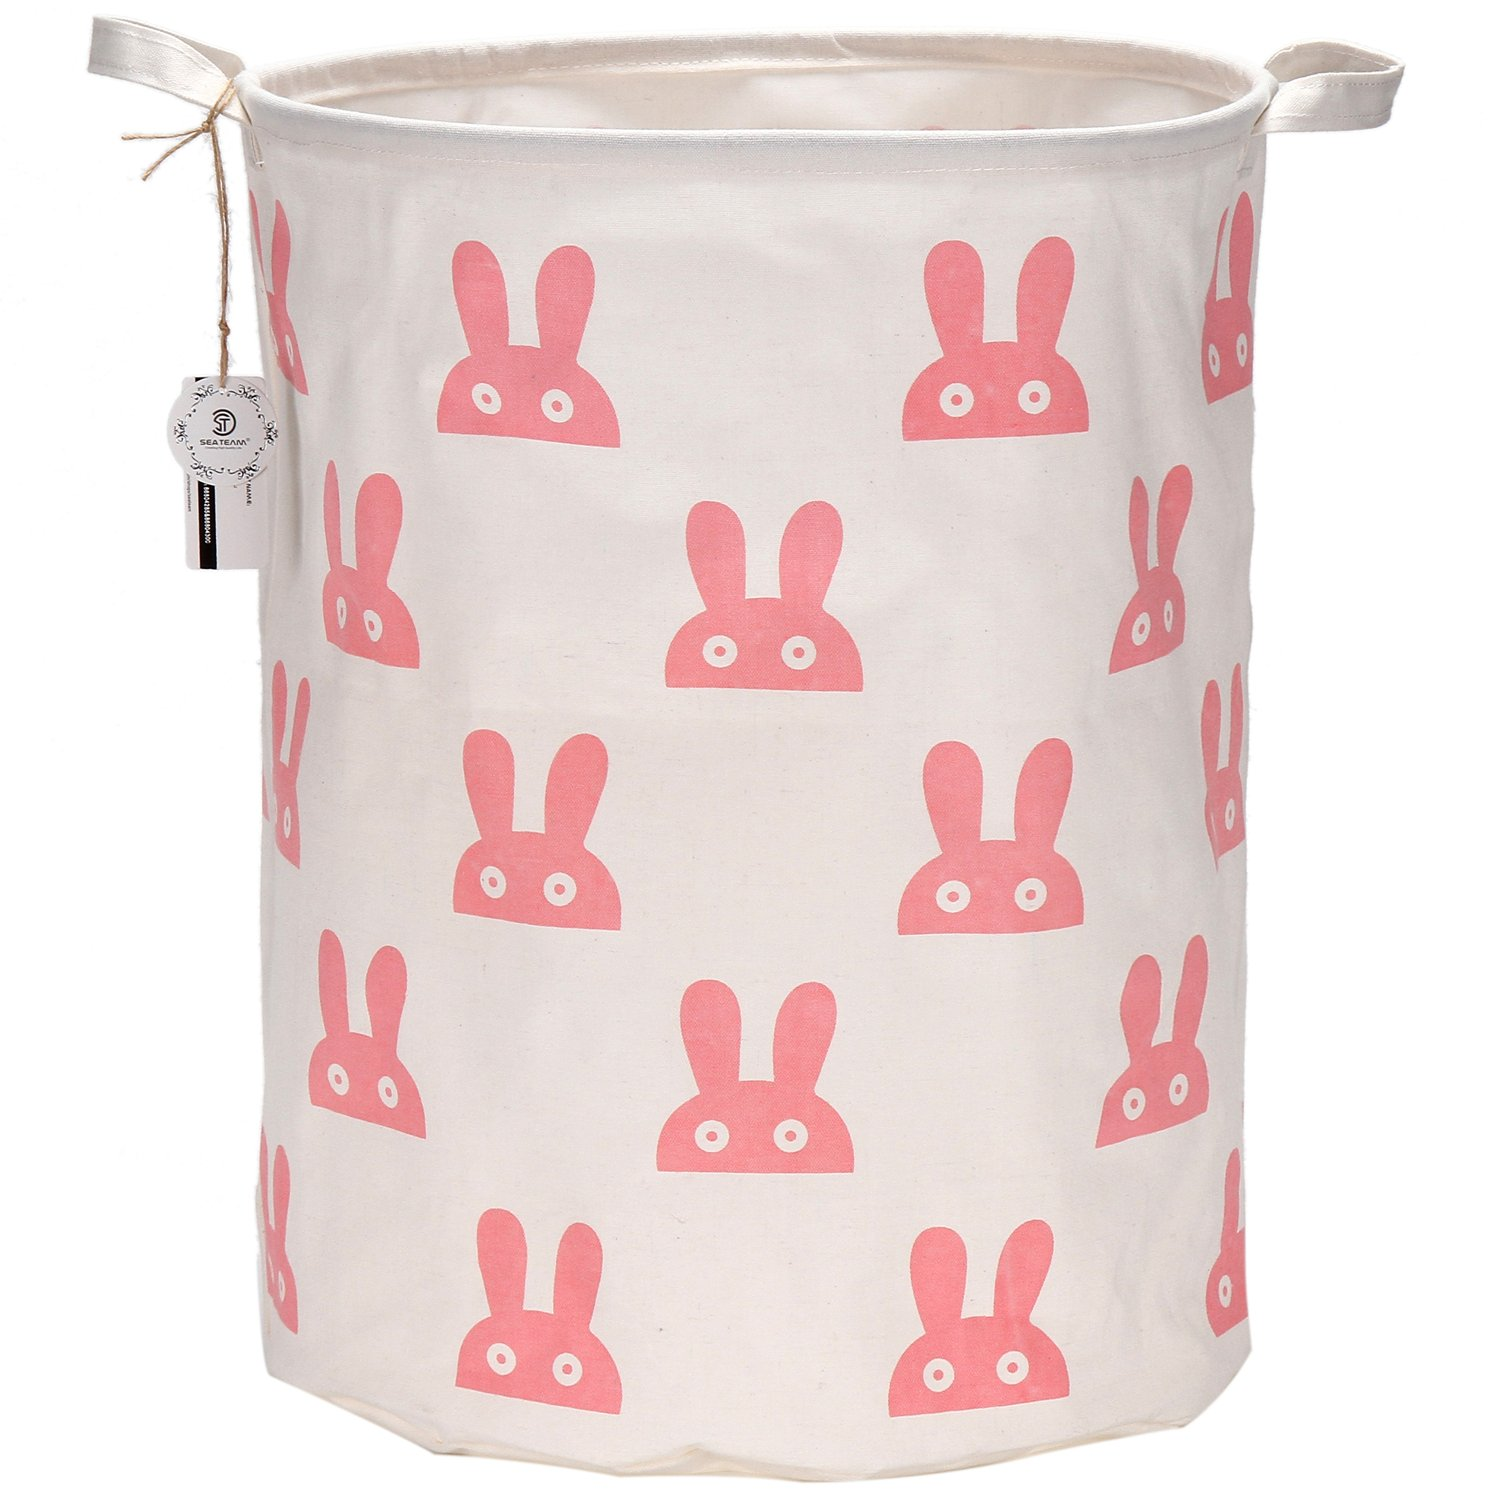 "Sea Team 19.7"" Large Sized Waterproof Coating Ramie Cotton Fabric Folding Laundry Hamper Bucket Cylindric Burlap Canvas Storage Basket with Cute Bunny Design (Pink)"